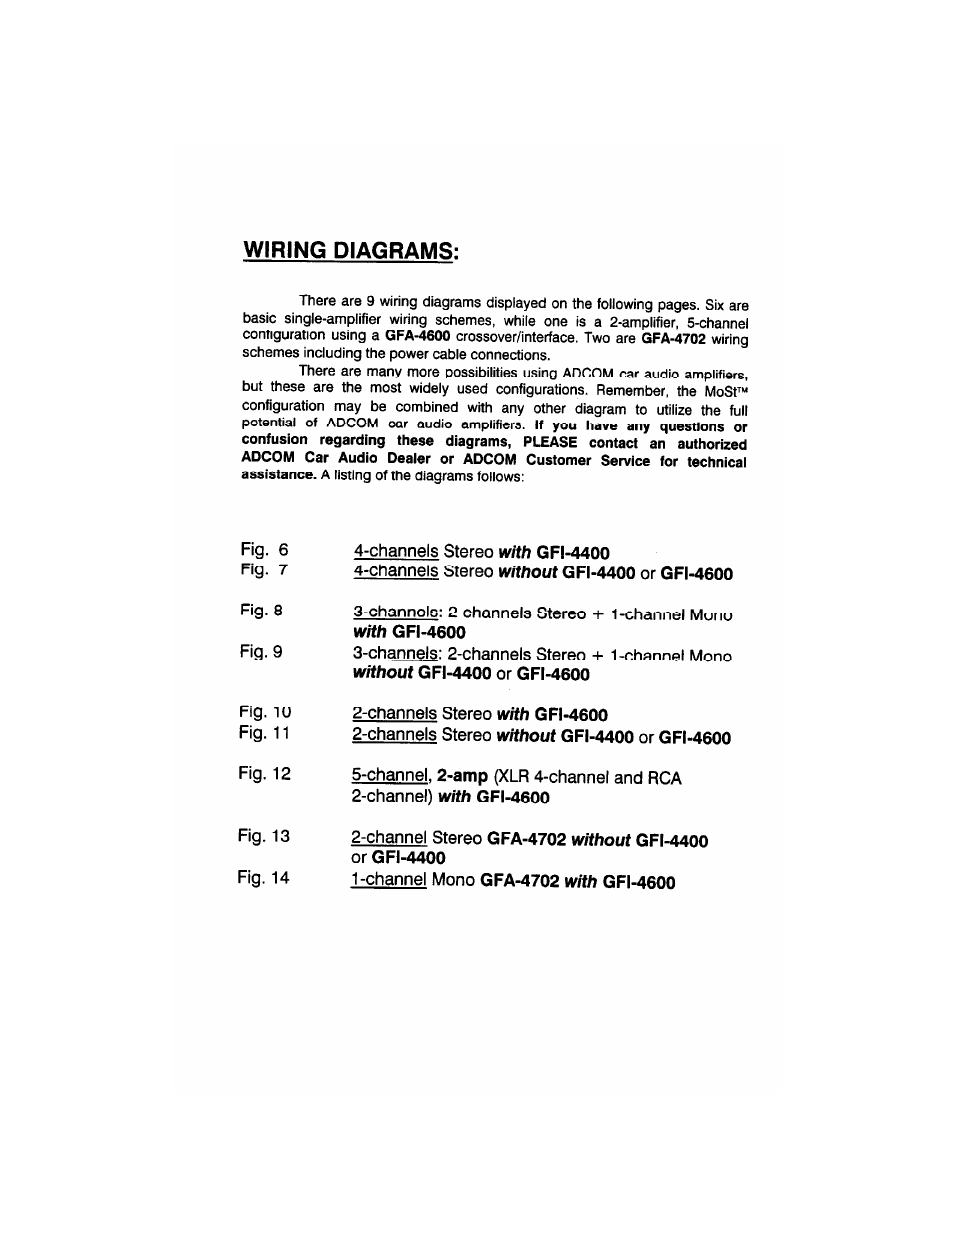 Wiring Diagrams Channels Stereo With Gfi 4400 1channel Amp Diagram Without Or 4600 Adcom Gfa 4304 User Manual Page 13 24